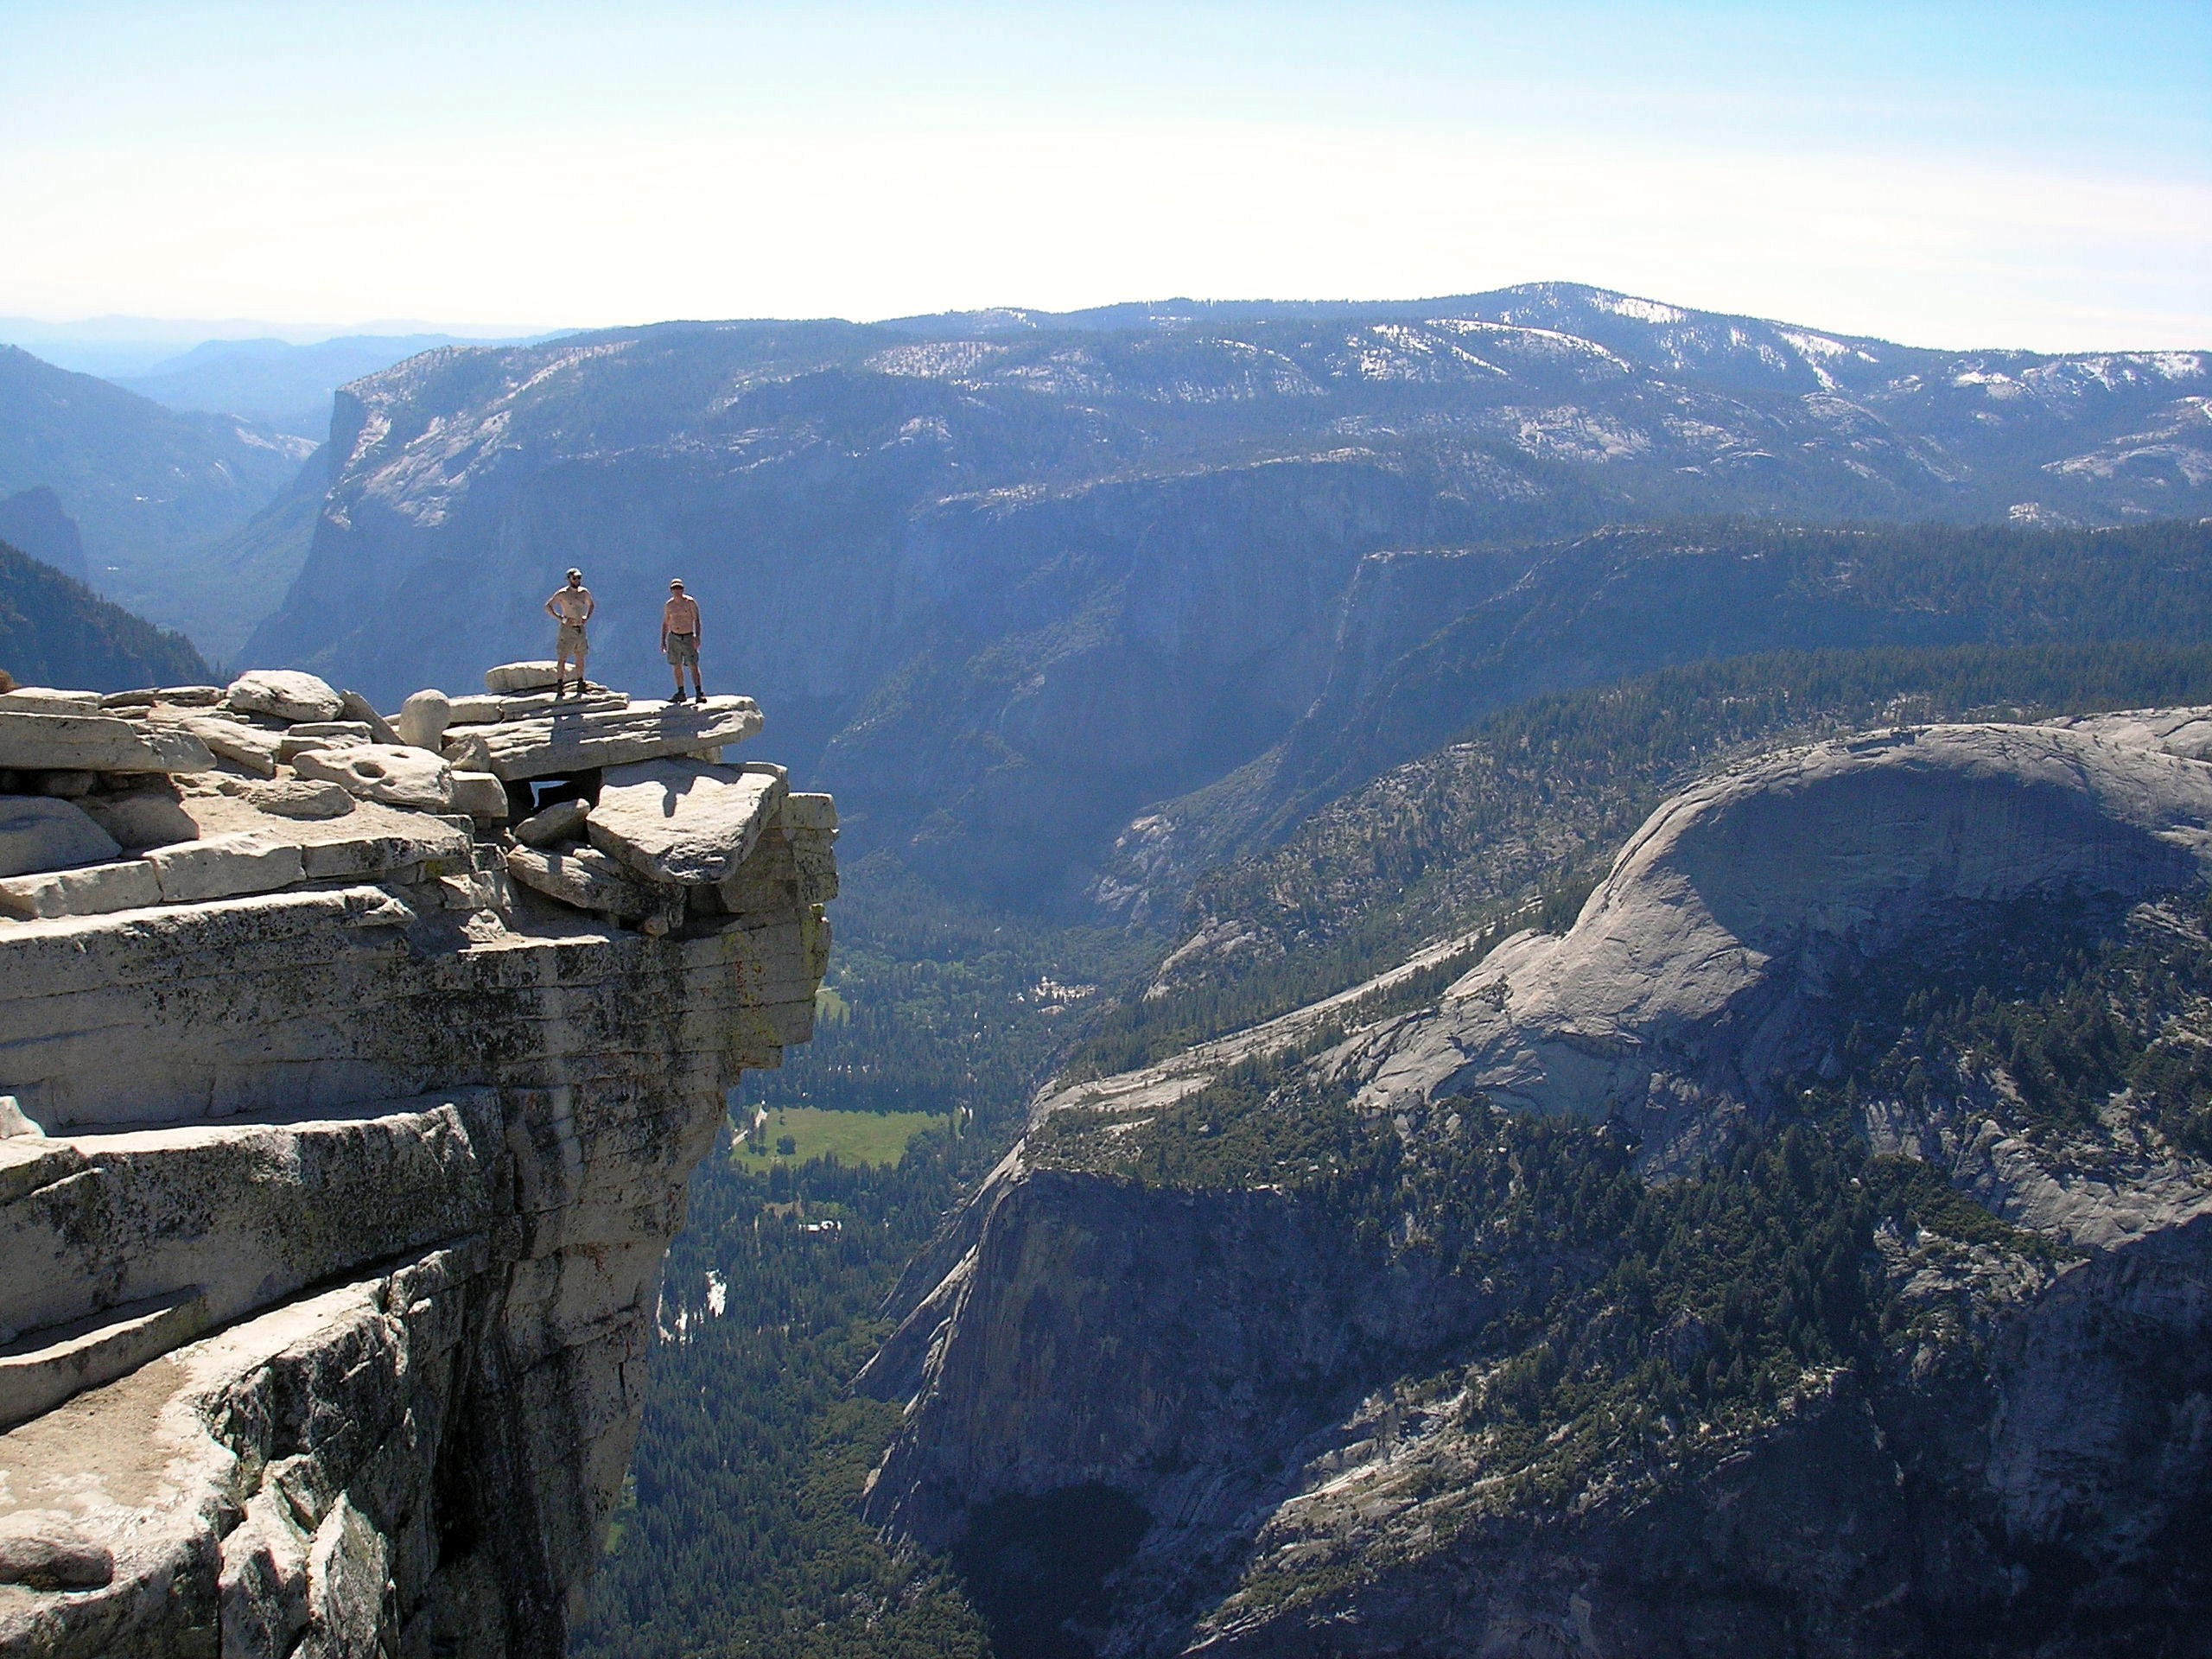 Perched nearly a vertical mile above Yosemite Valley, a pair of fools stands on the summit of Half Dome, one of the world's most recognized and respected granite monoliths.   (photo by John Random)